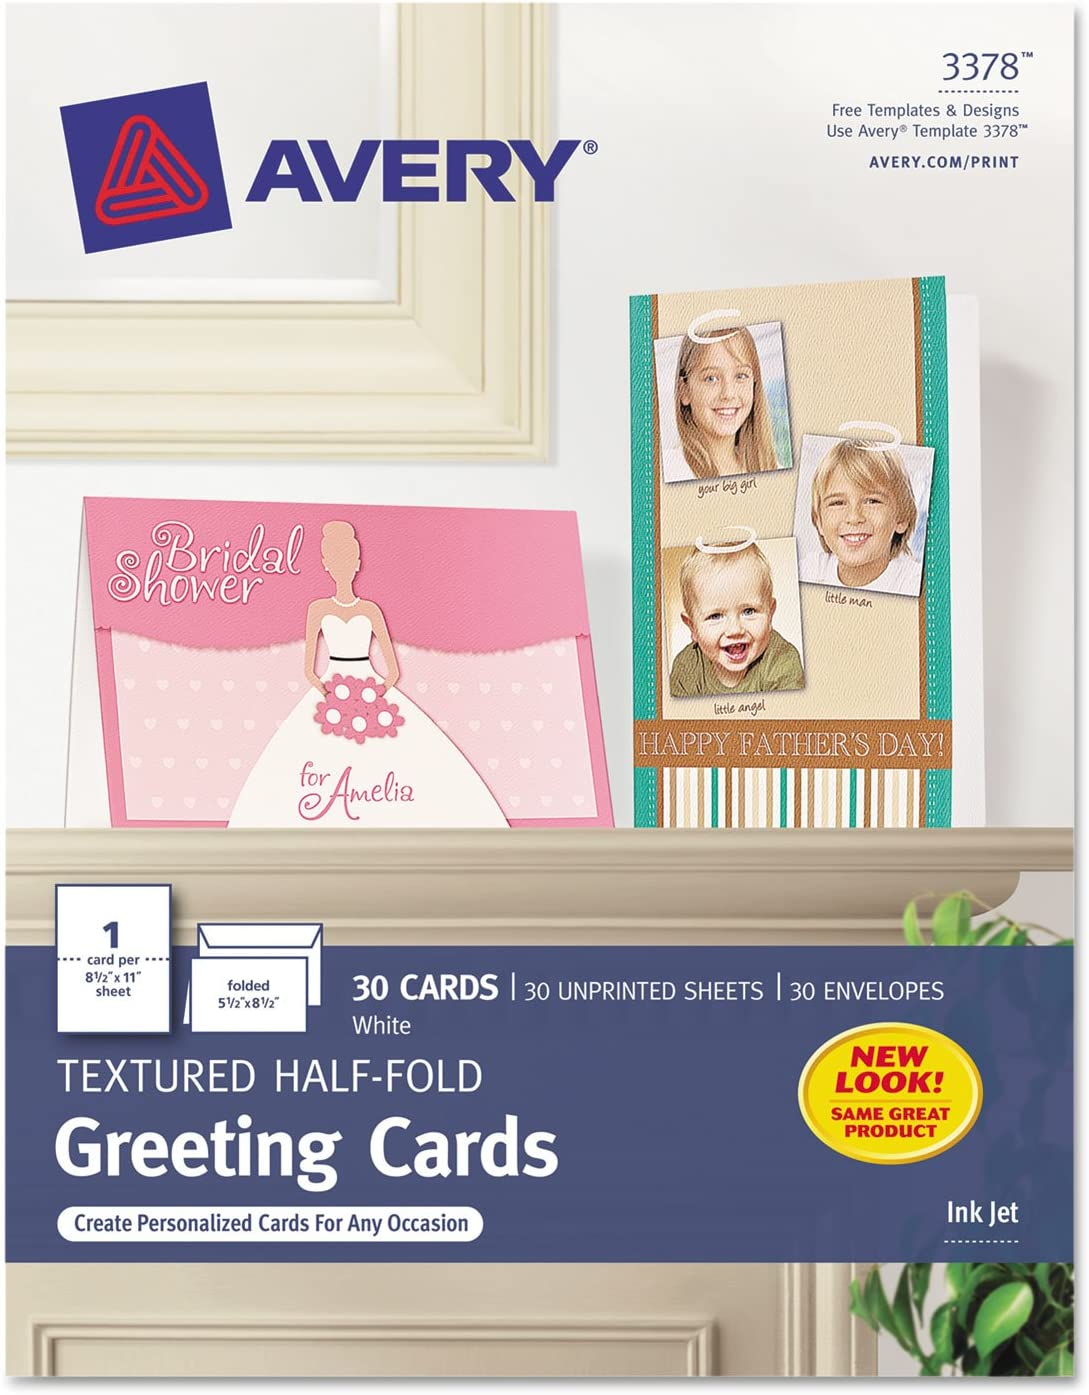 Avery 3378 Textured Half-Fold Greeting Cards, Inkjet, 5 1/2 x 8 1/2, White, Envelopes Included (Box of 30) : Office Products